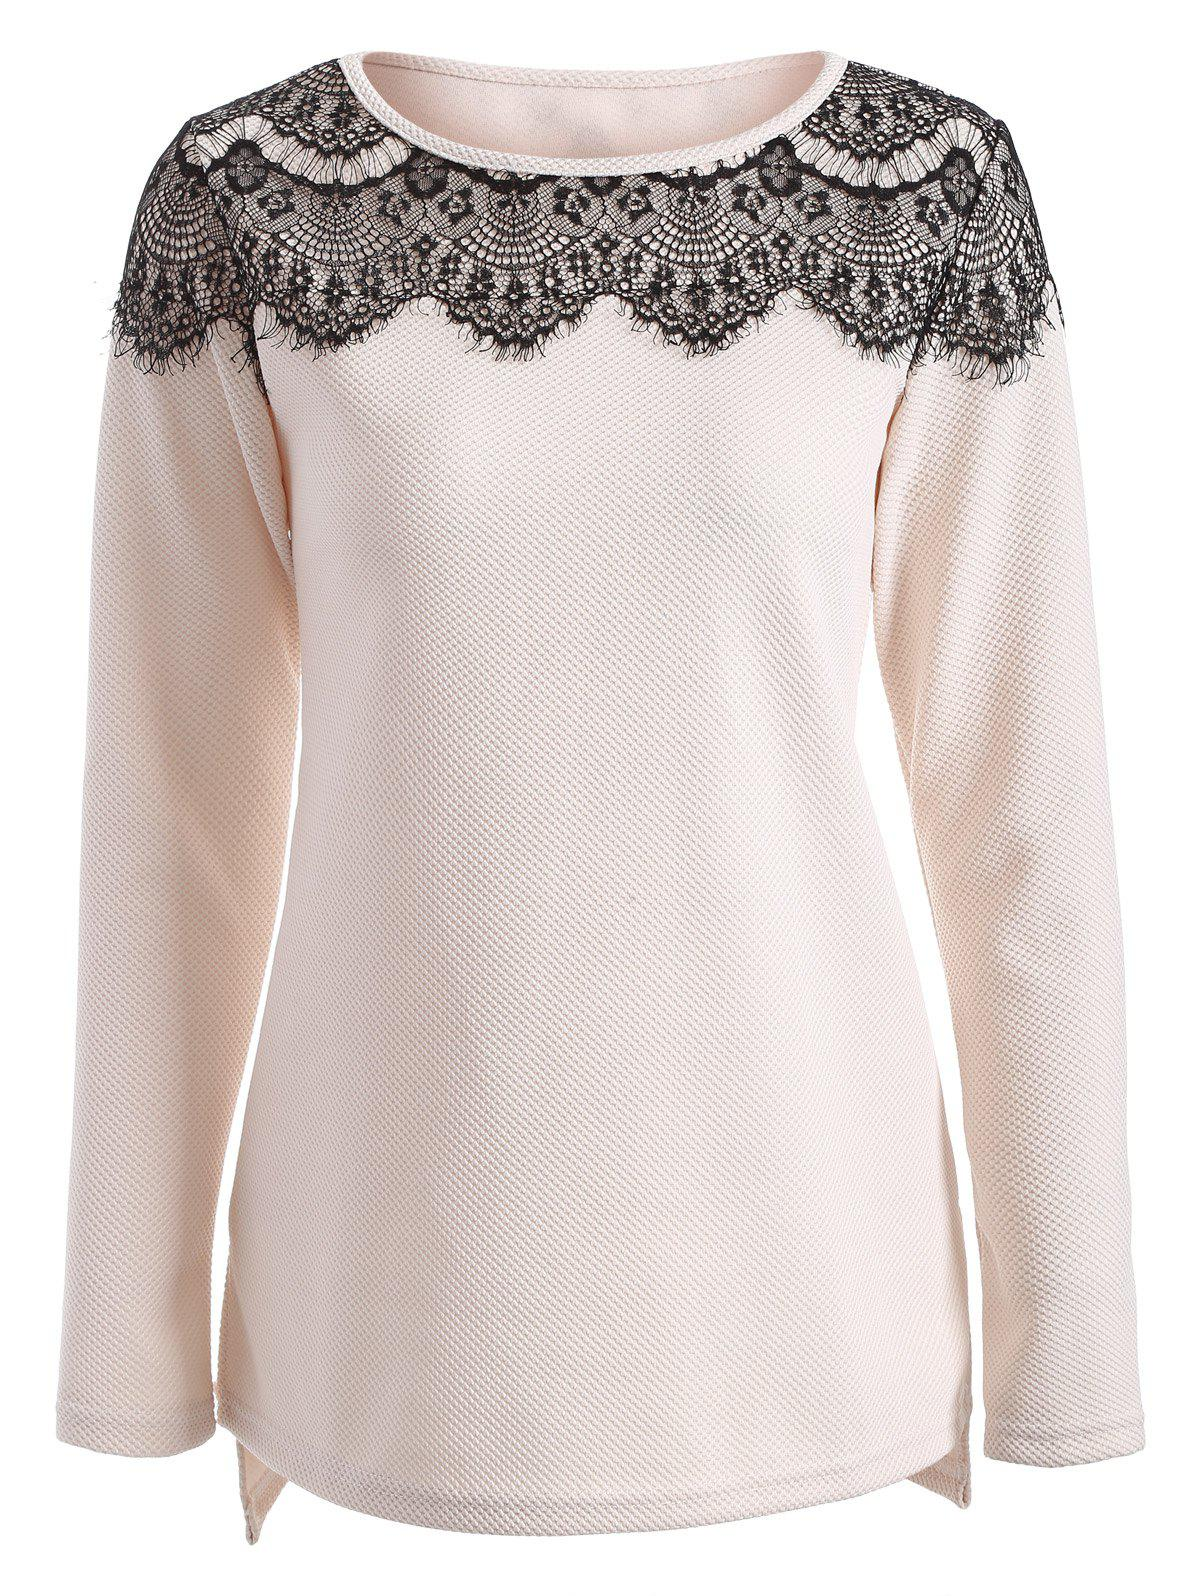 Lace Insert High Low T Shirt - OFF WHITE XL